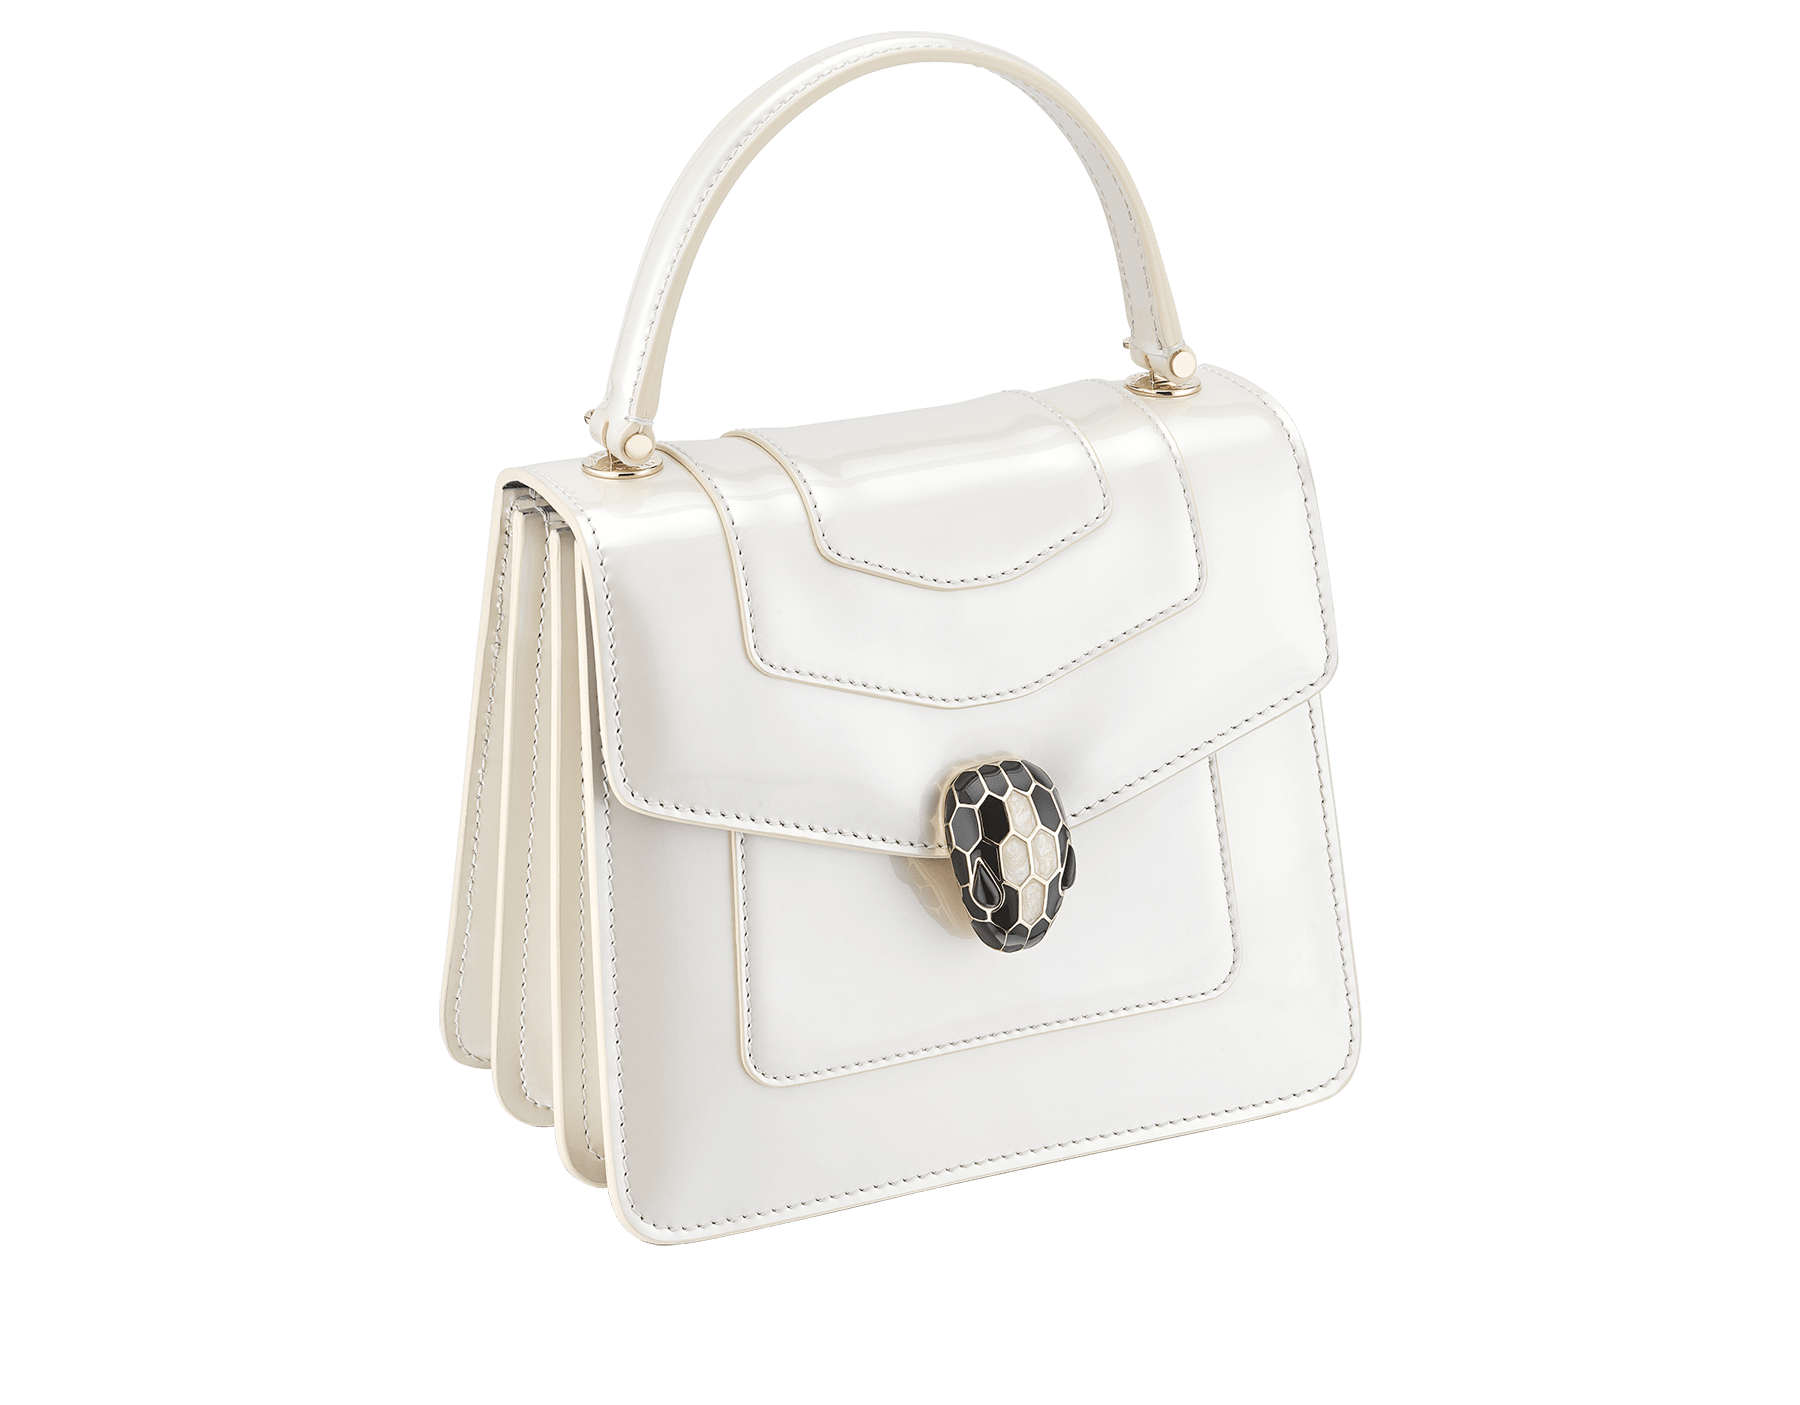 """""""Serpenti Forever """" crossbody bag in white agate leather with a varnished and pearled effect. Iconic snake head closure in light gold plated brass enriched with black and pearled white agate enamel, and black onyx eyes 752-CLd image 2"""